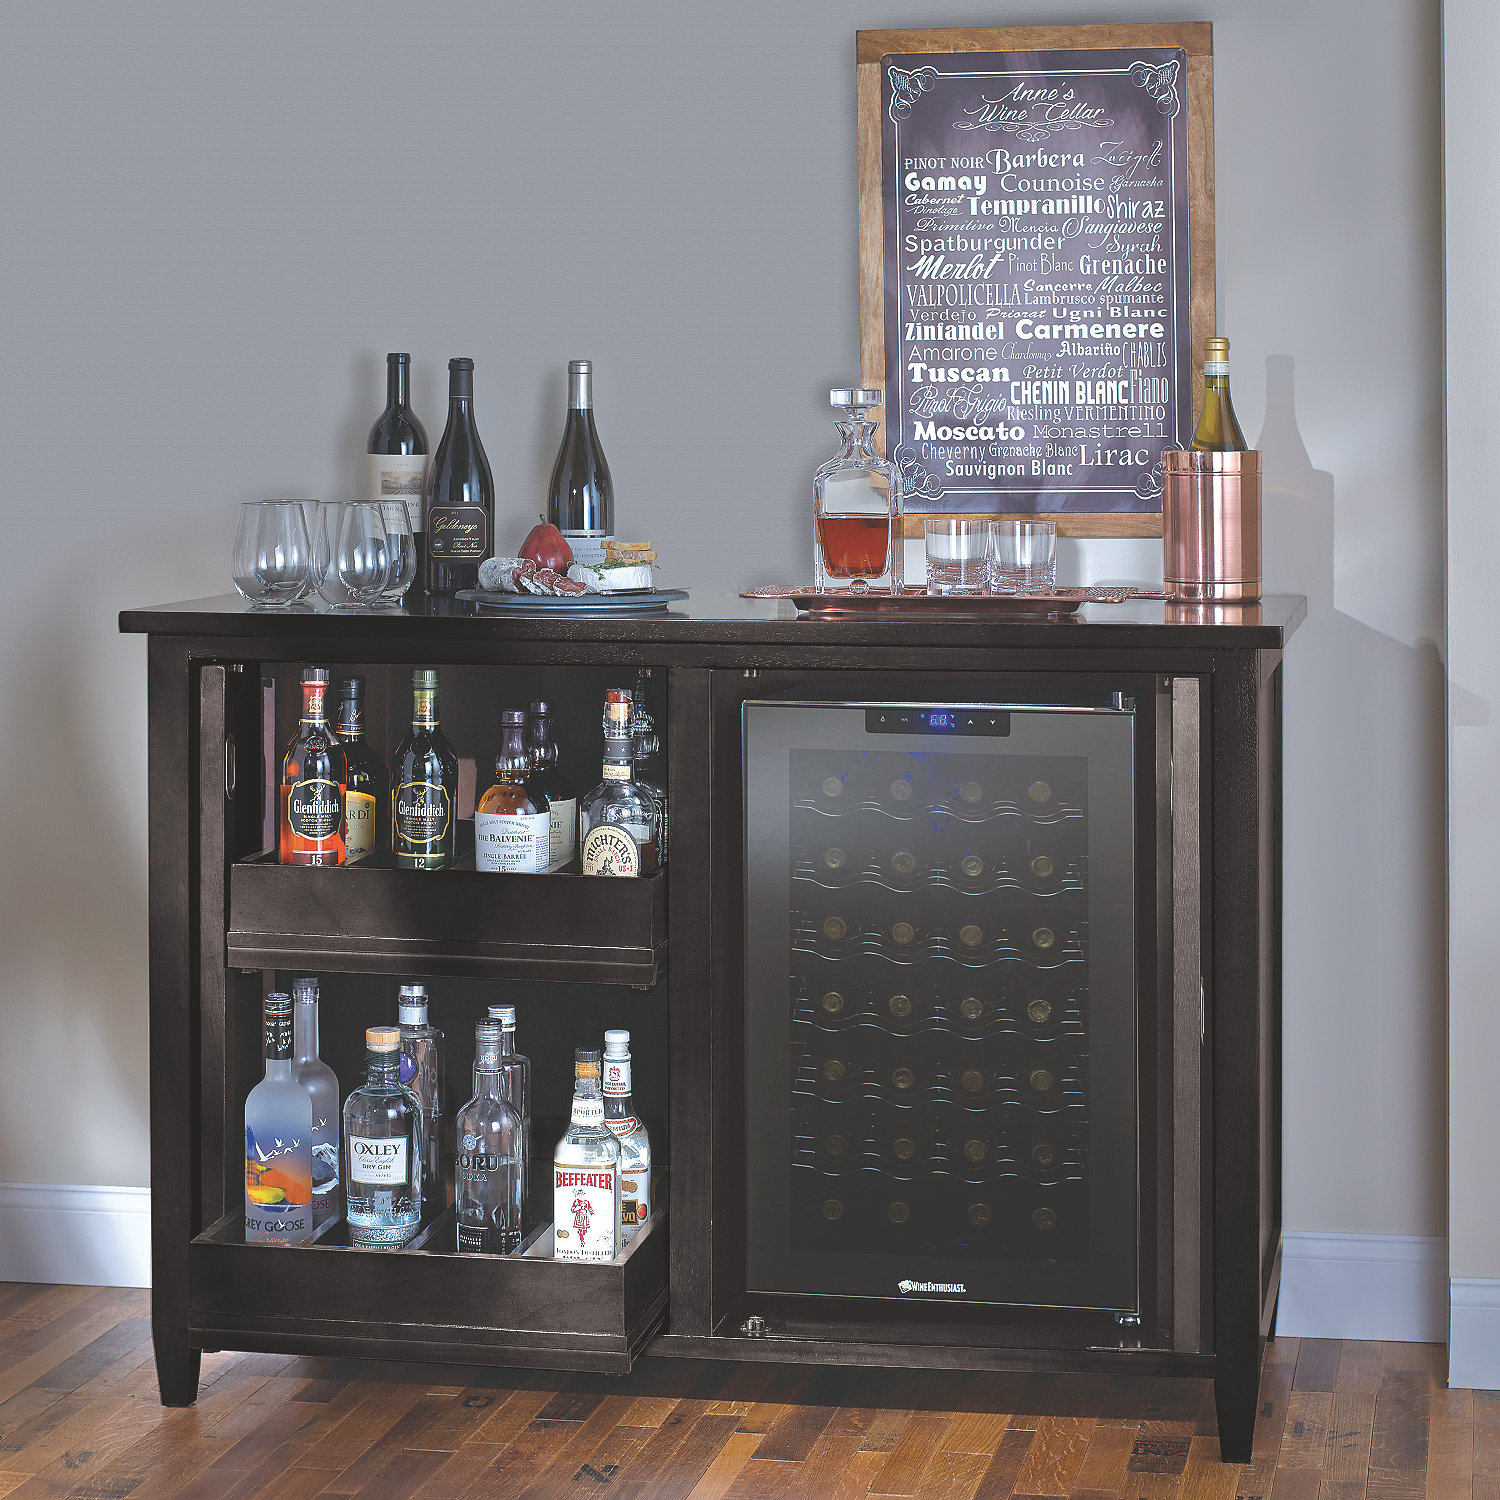 Refrigerated wine cabinet credenza cabinets matttroy Living room bar with fridge